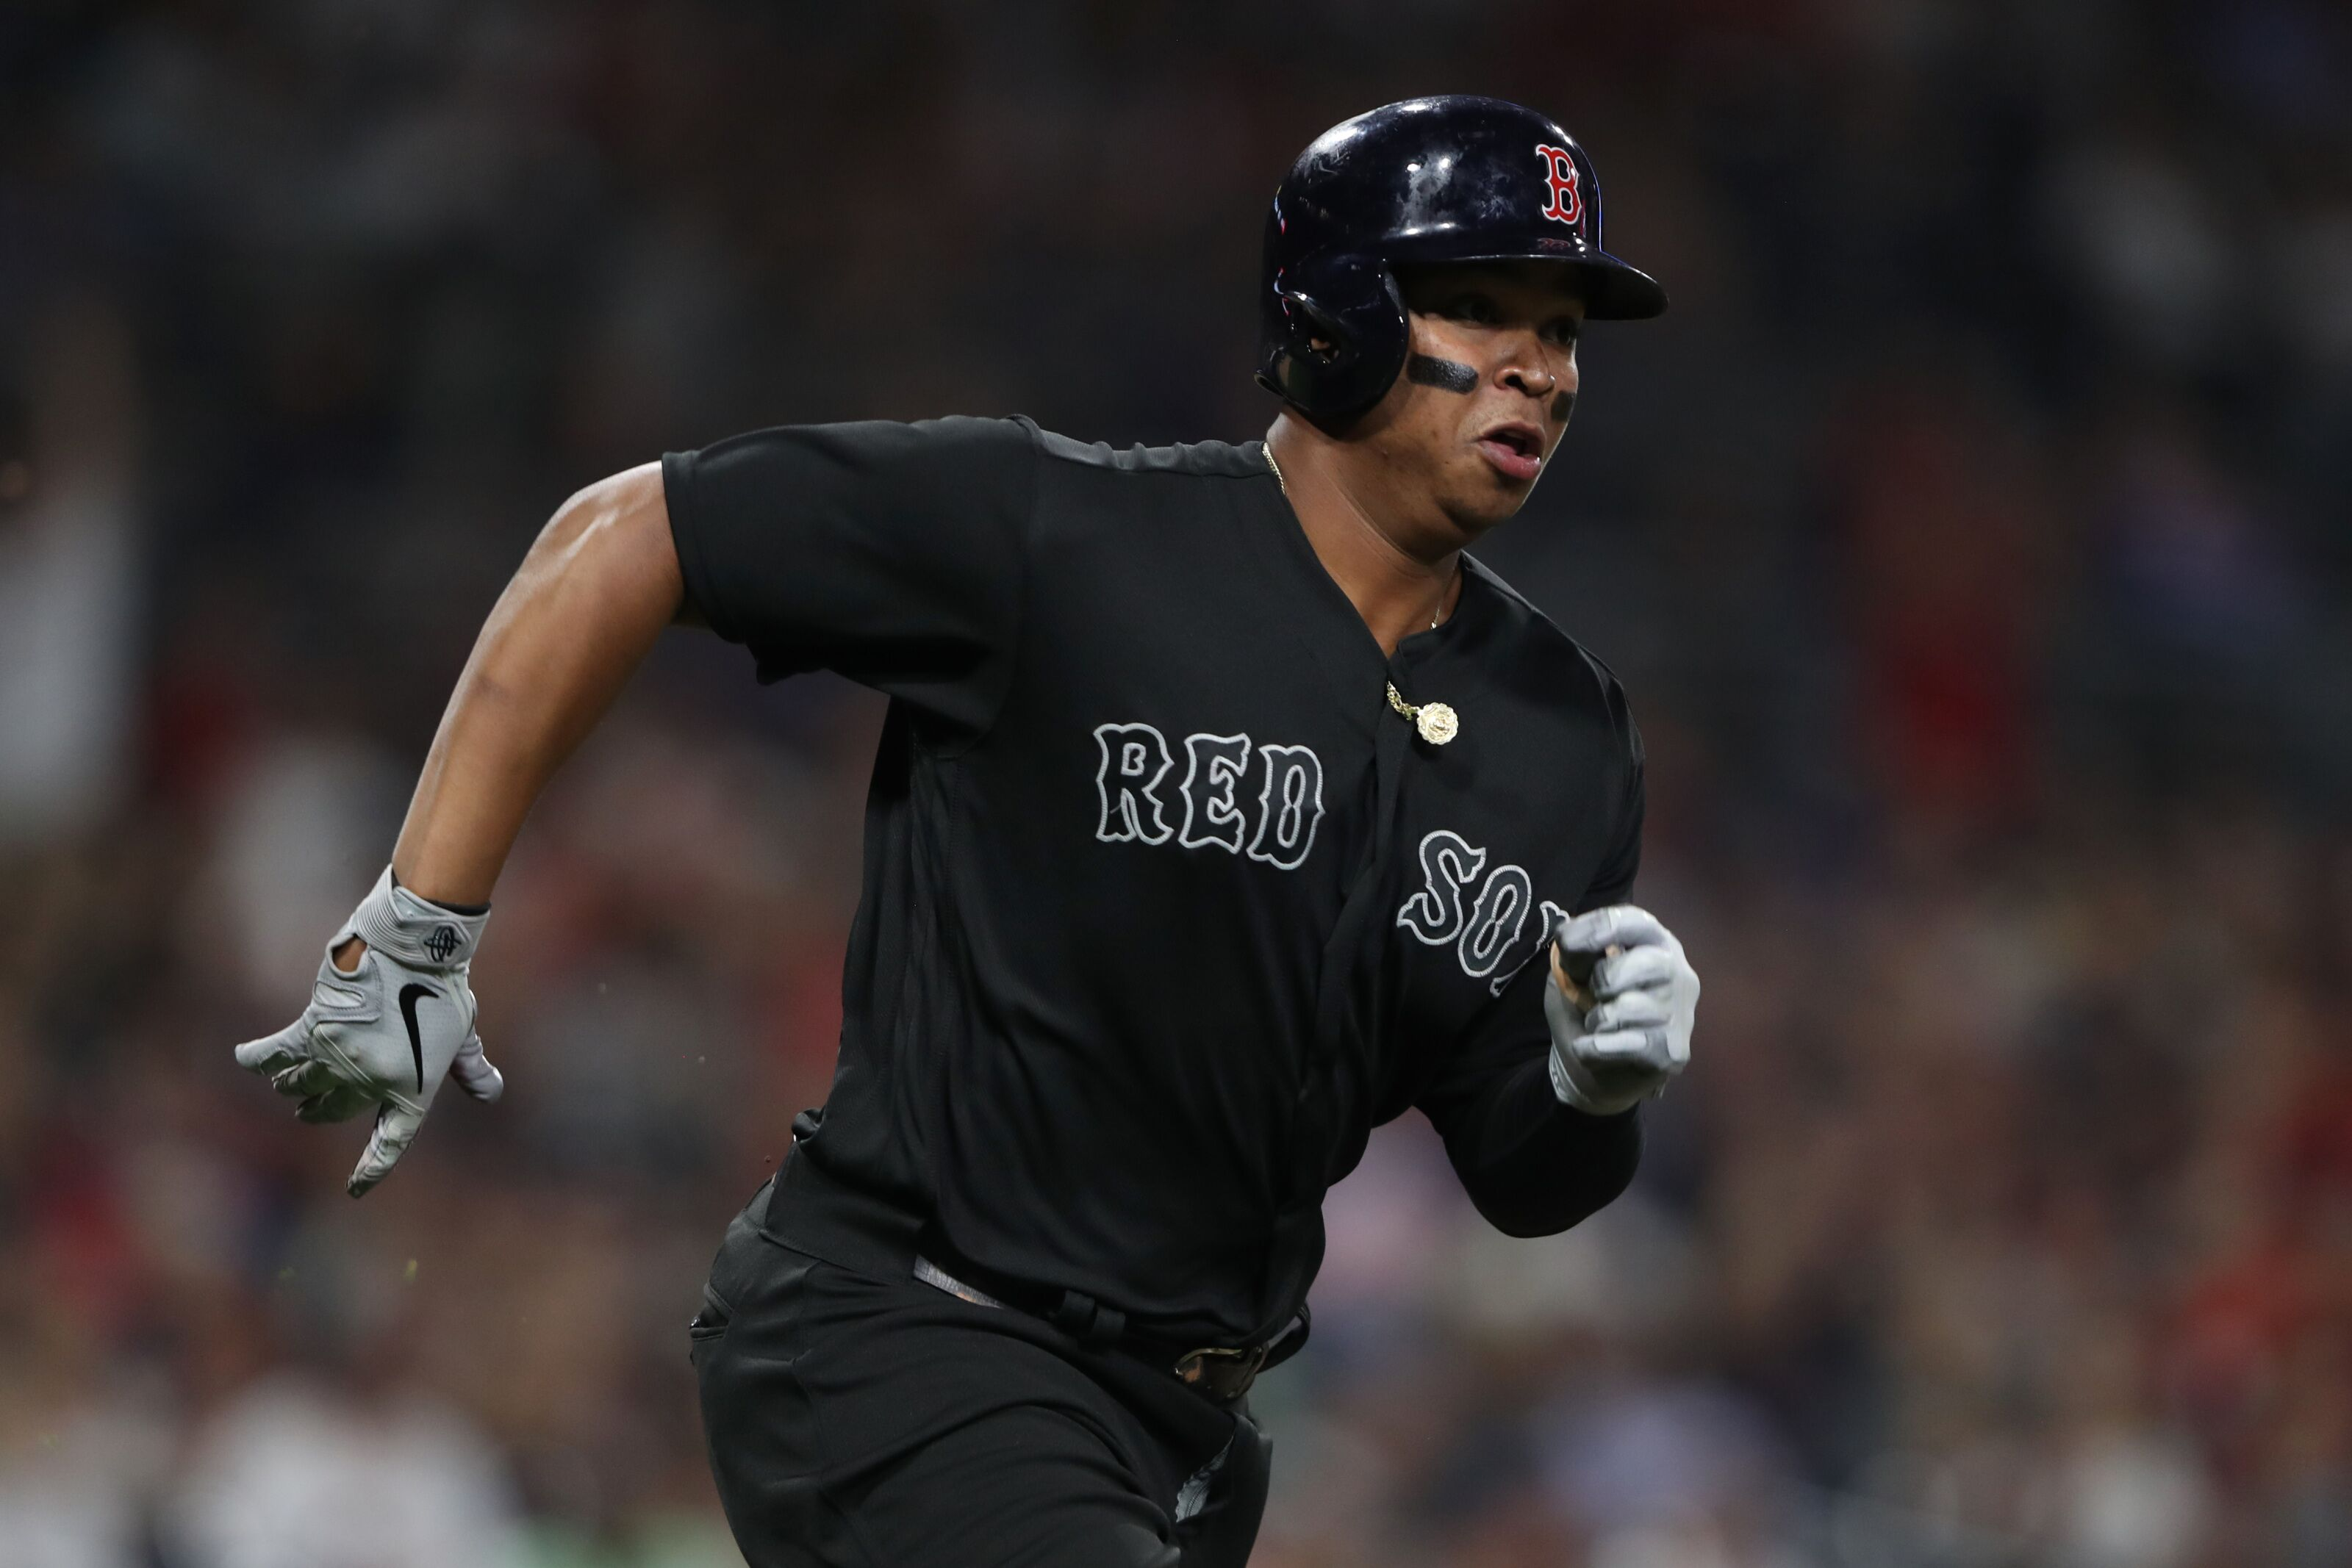 Boston Red Sox 2019 report card: Grading Rafael Devers' breakout season